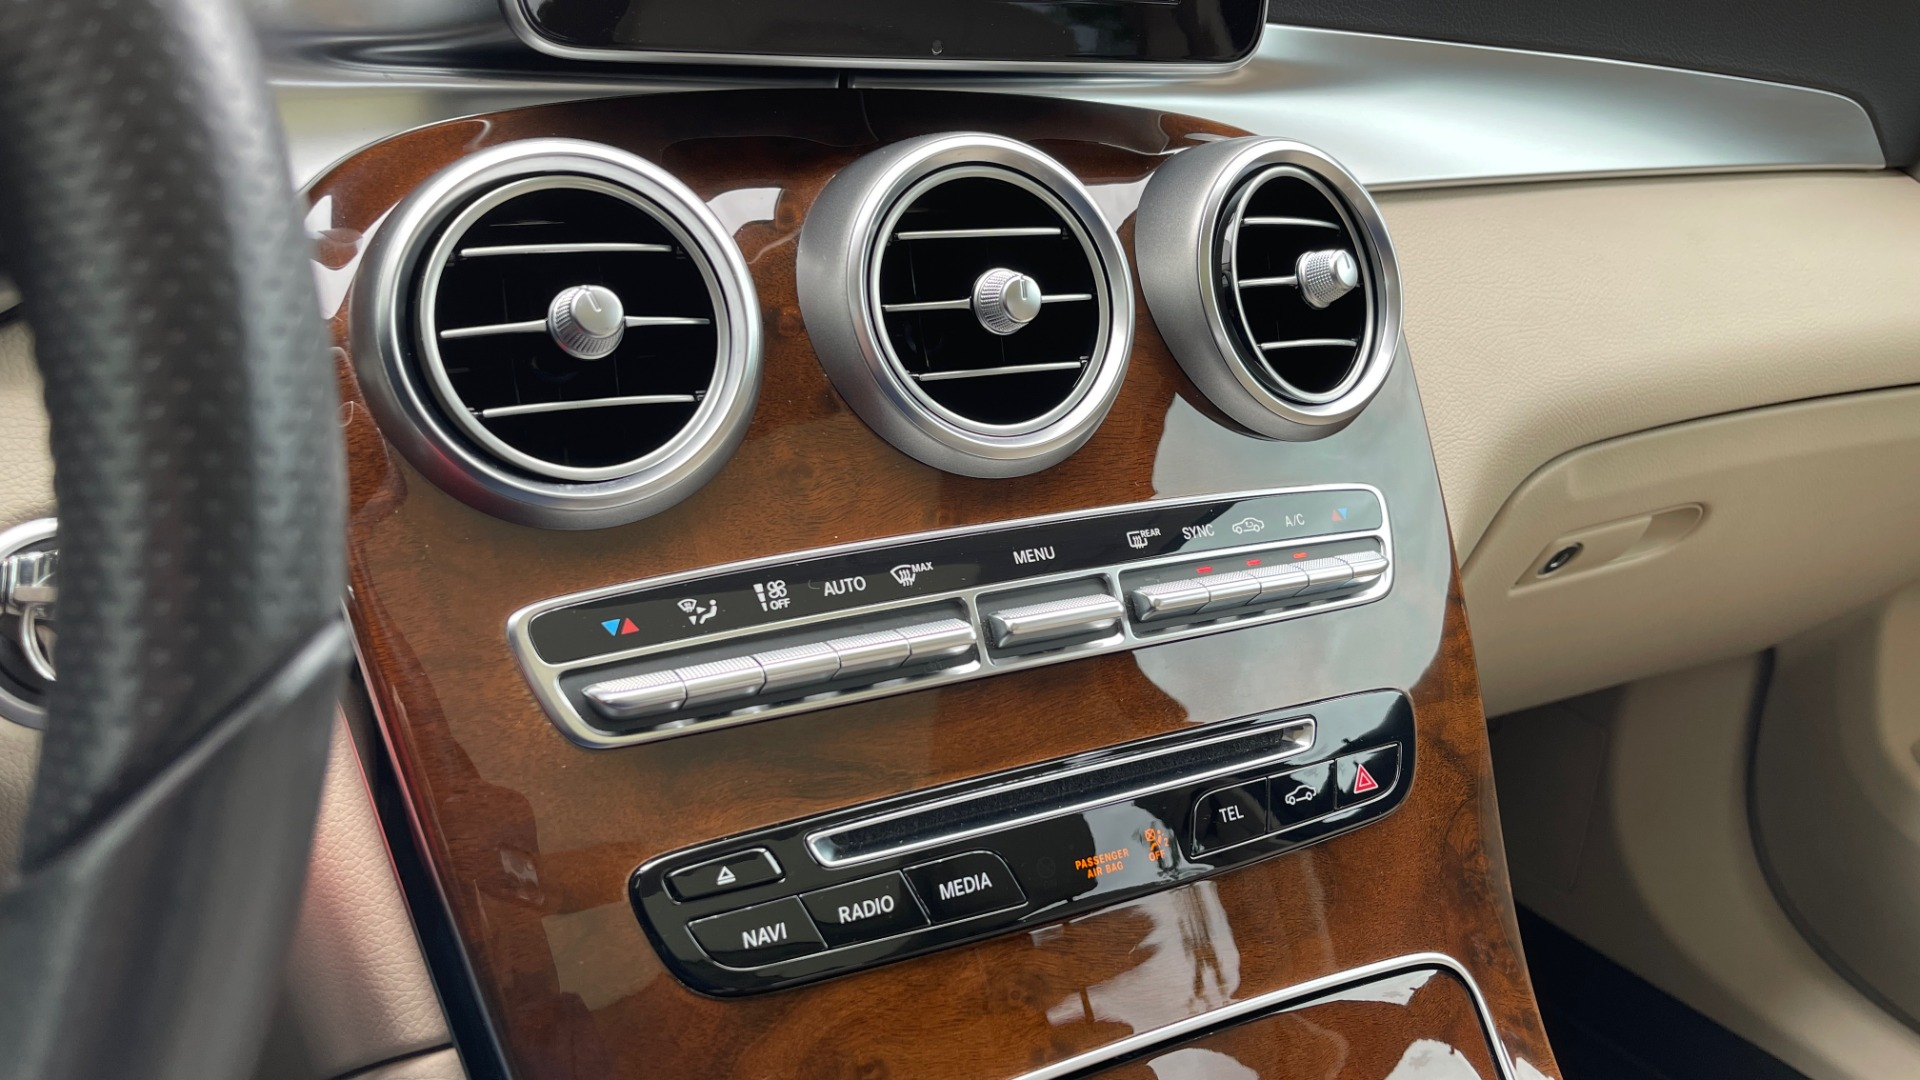 Used 2018 Mercedes-Benz GLC 300 PREMIUM / PANO-ROOF / HTD STS / PARK ASST / REARVIEW for sale $34,613 at Formula Imports in Charlotte NC 28227 37